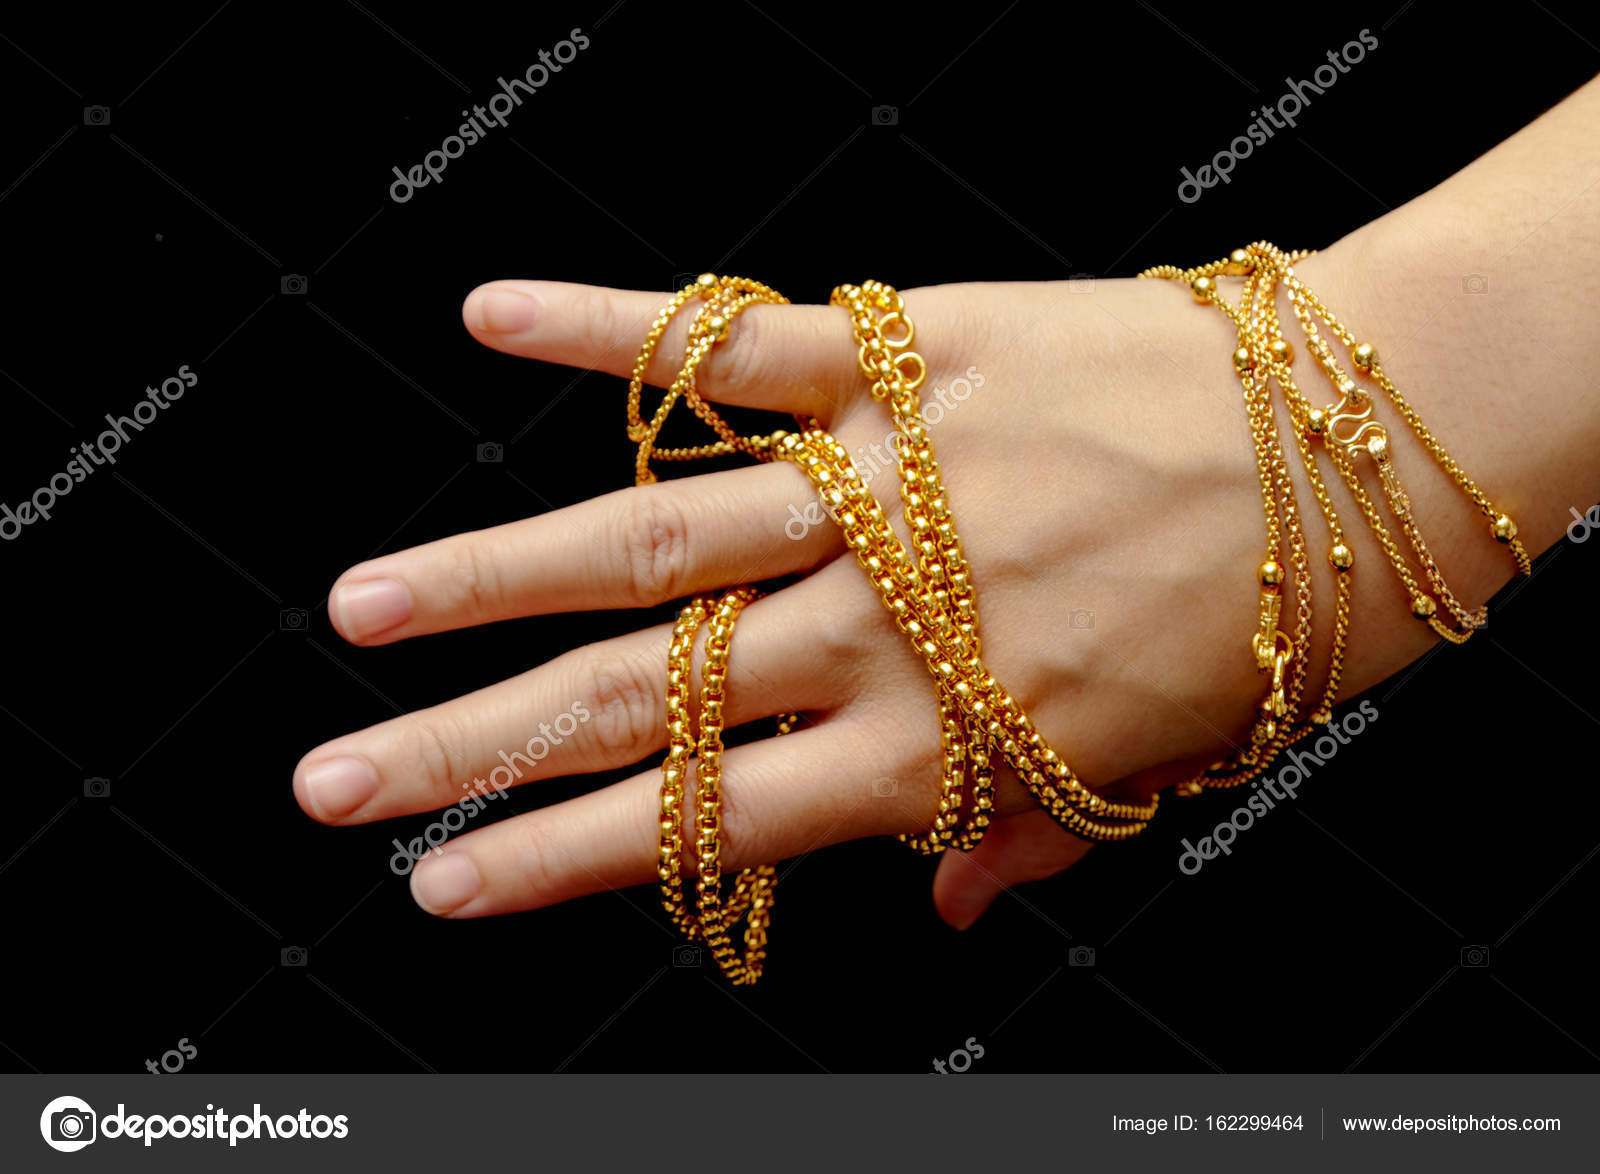 getting is to gold more jewelry blame expensive investment and